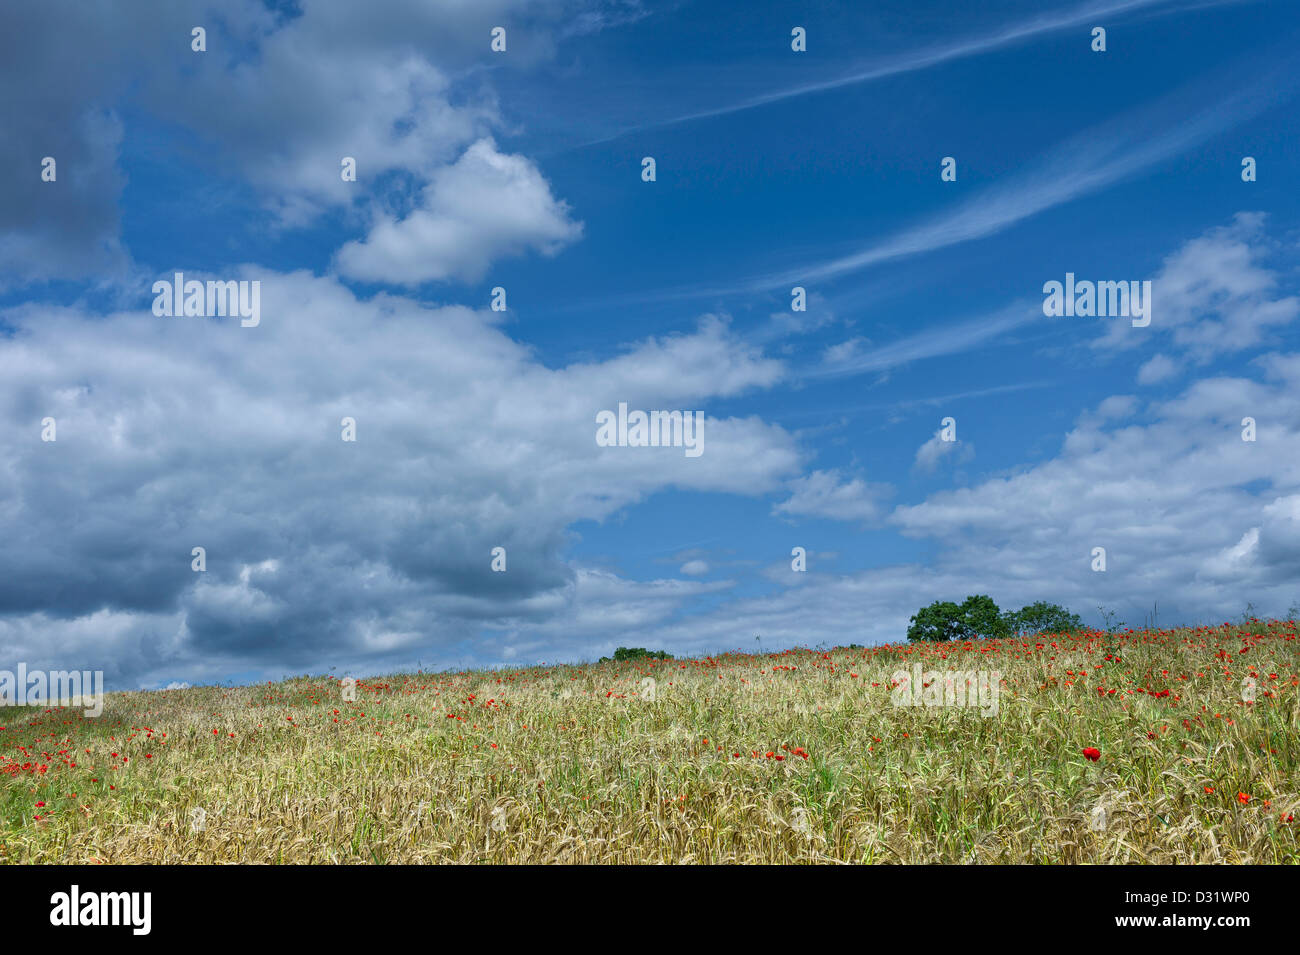 Poppies in a field of wheat on a bright summer day near the town of Malton in north Yorkshire, UK. - Stock Image